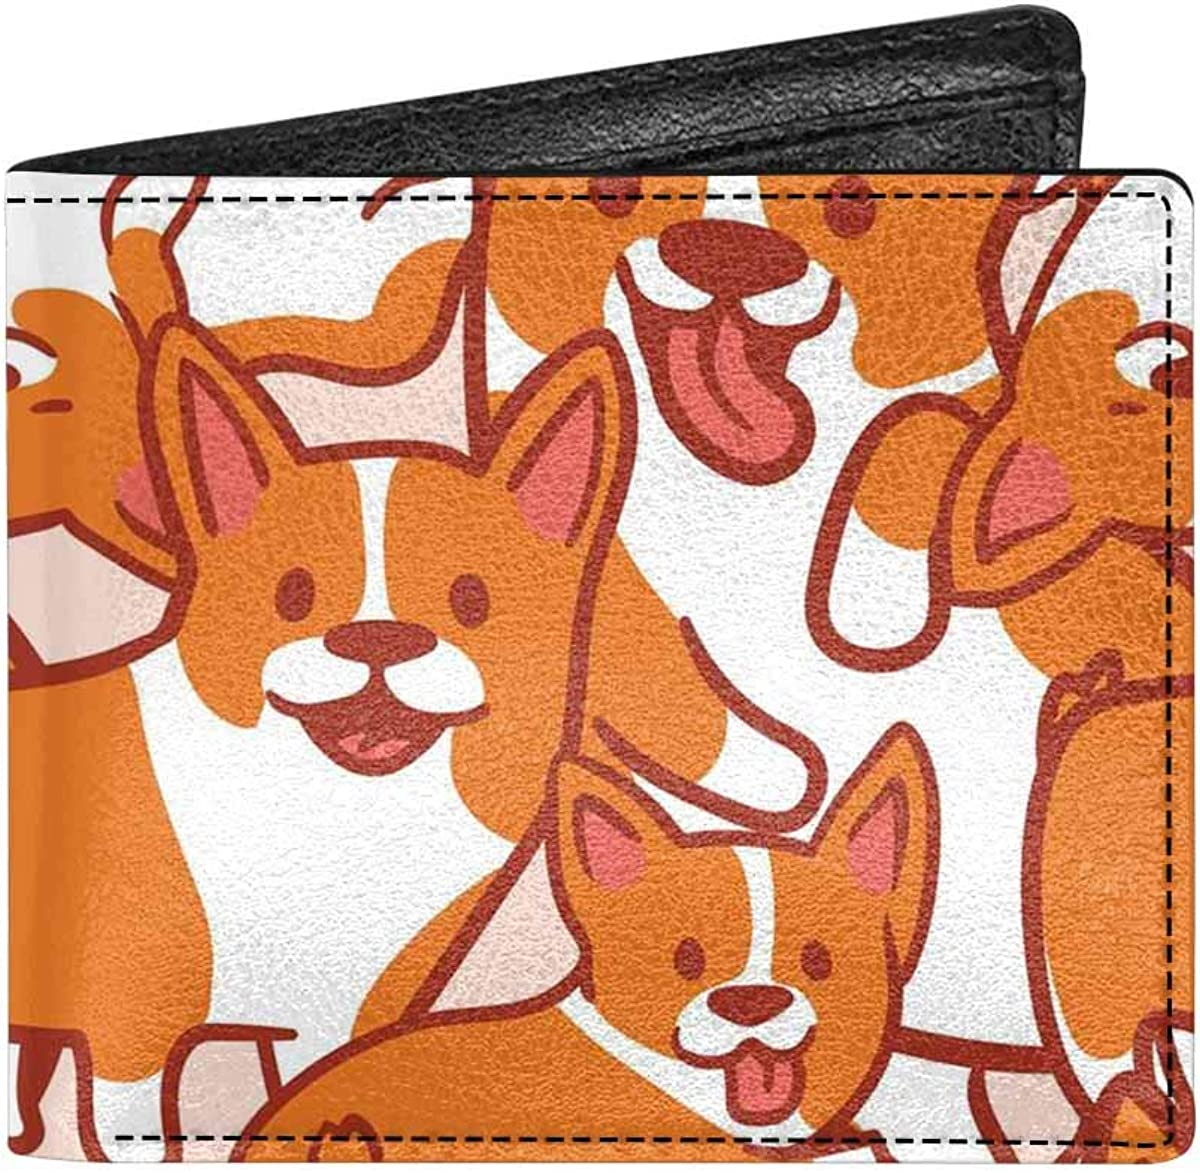 INTERESTPRINT Cartoon Character Cute Pig Classic PU Leather Bifold Wallet for Adults with Coin Purse